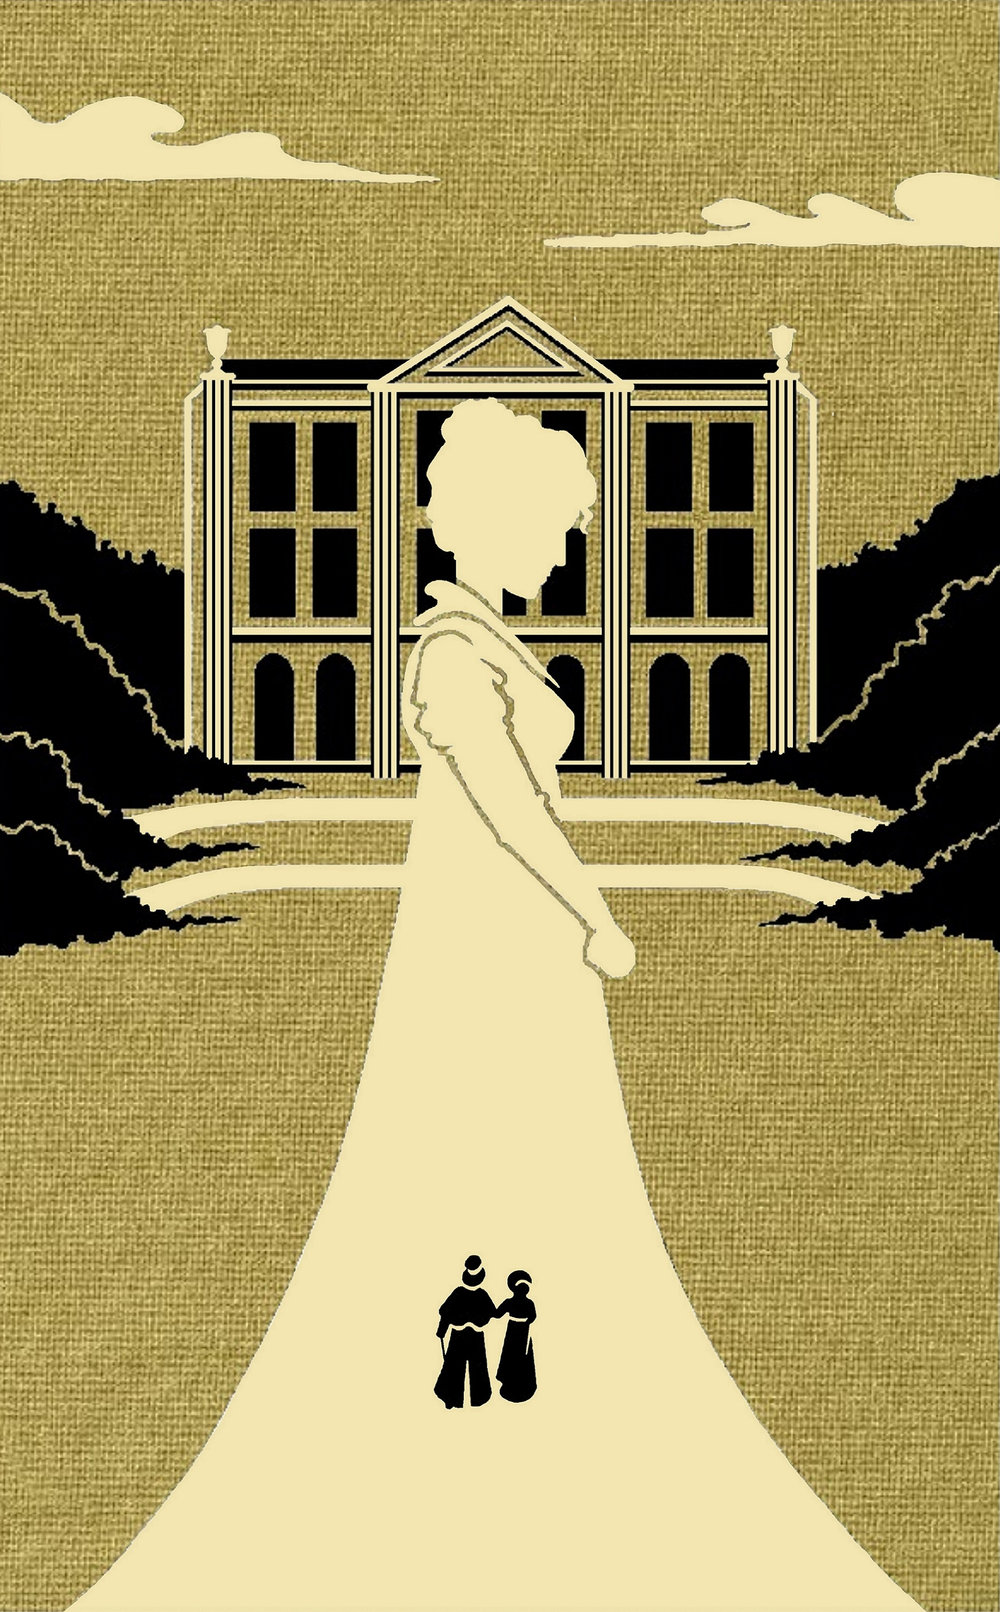 Mansfield Park Book Cover Design cropped - Alison Schofield Illustration.jpg